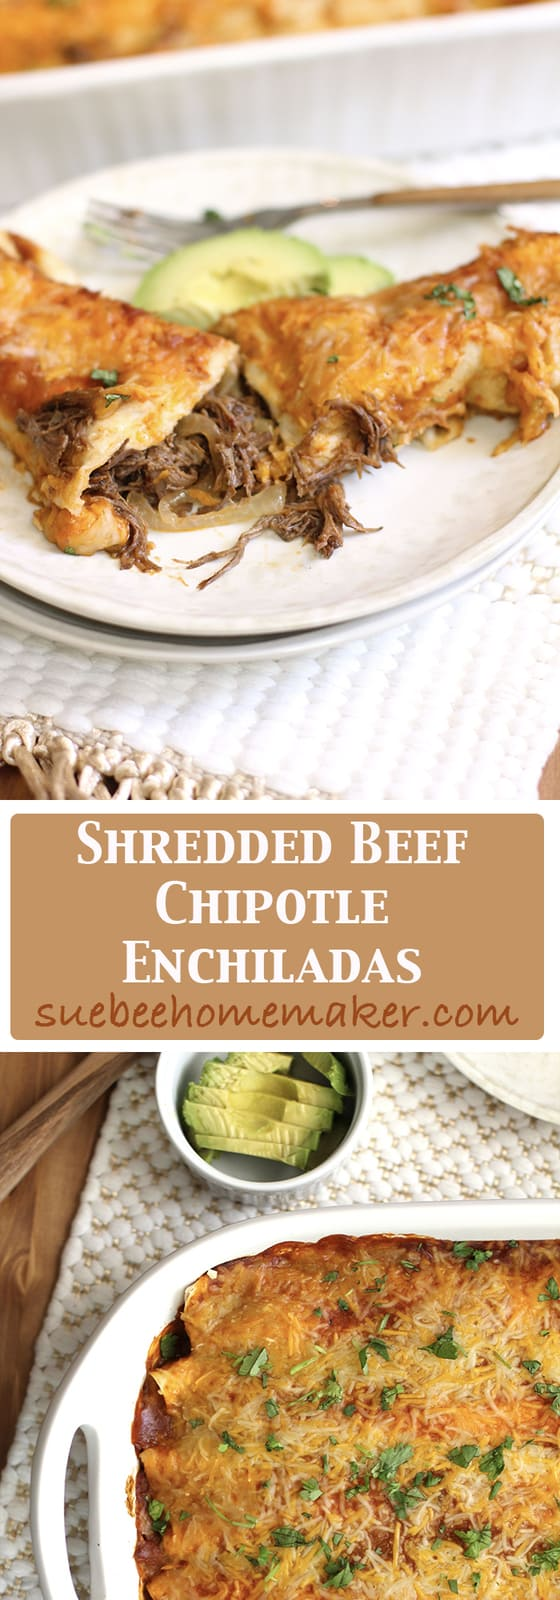 Shredded Beef Chipotle Enchiladas combine tender shredded beef in tortillas, topped with an amazing homemade enchilada sauce and shredded Mexican Cheese! | suebeehomemaker.com